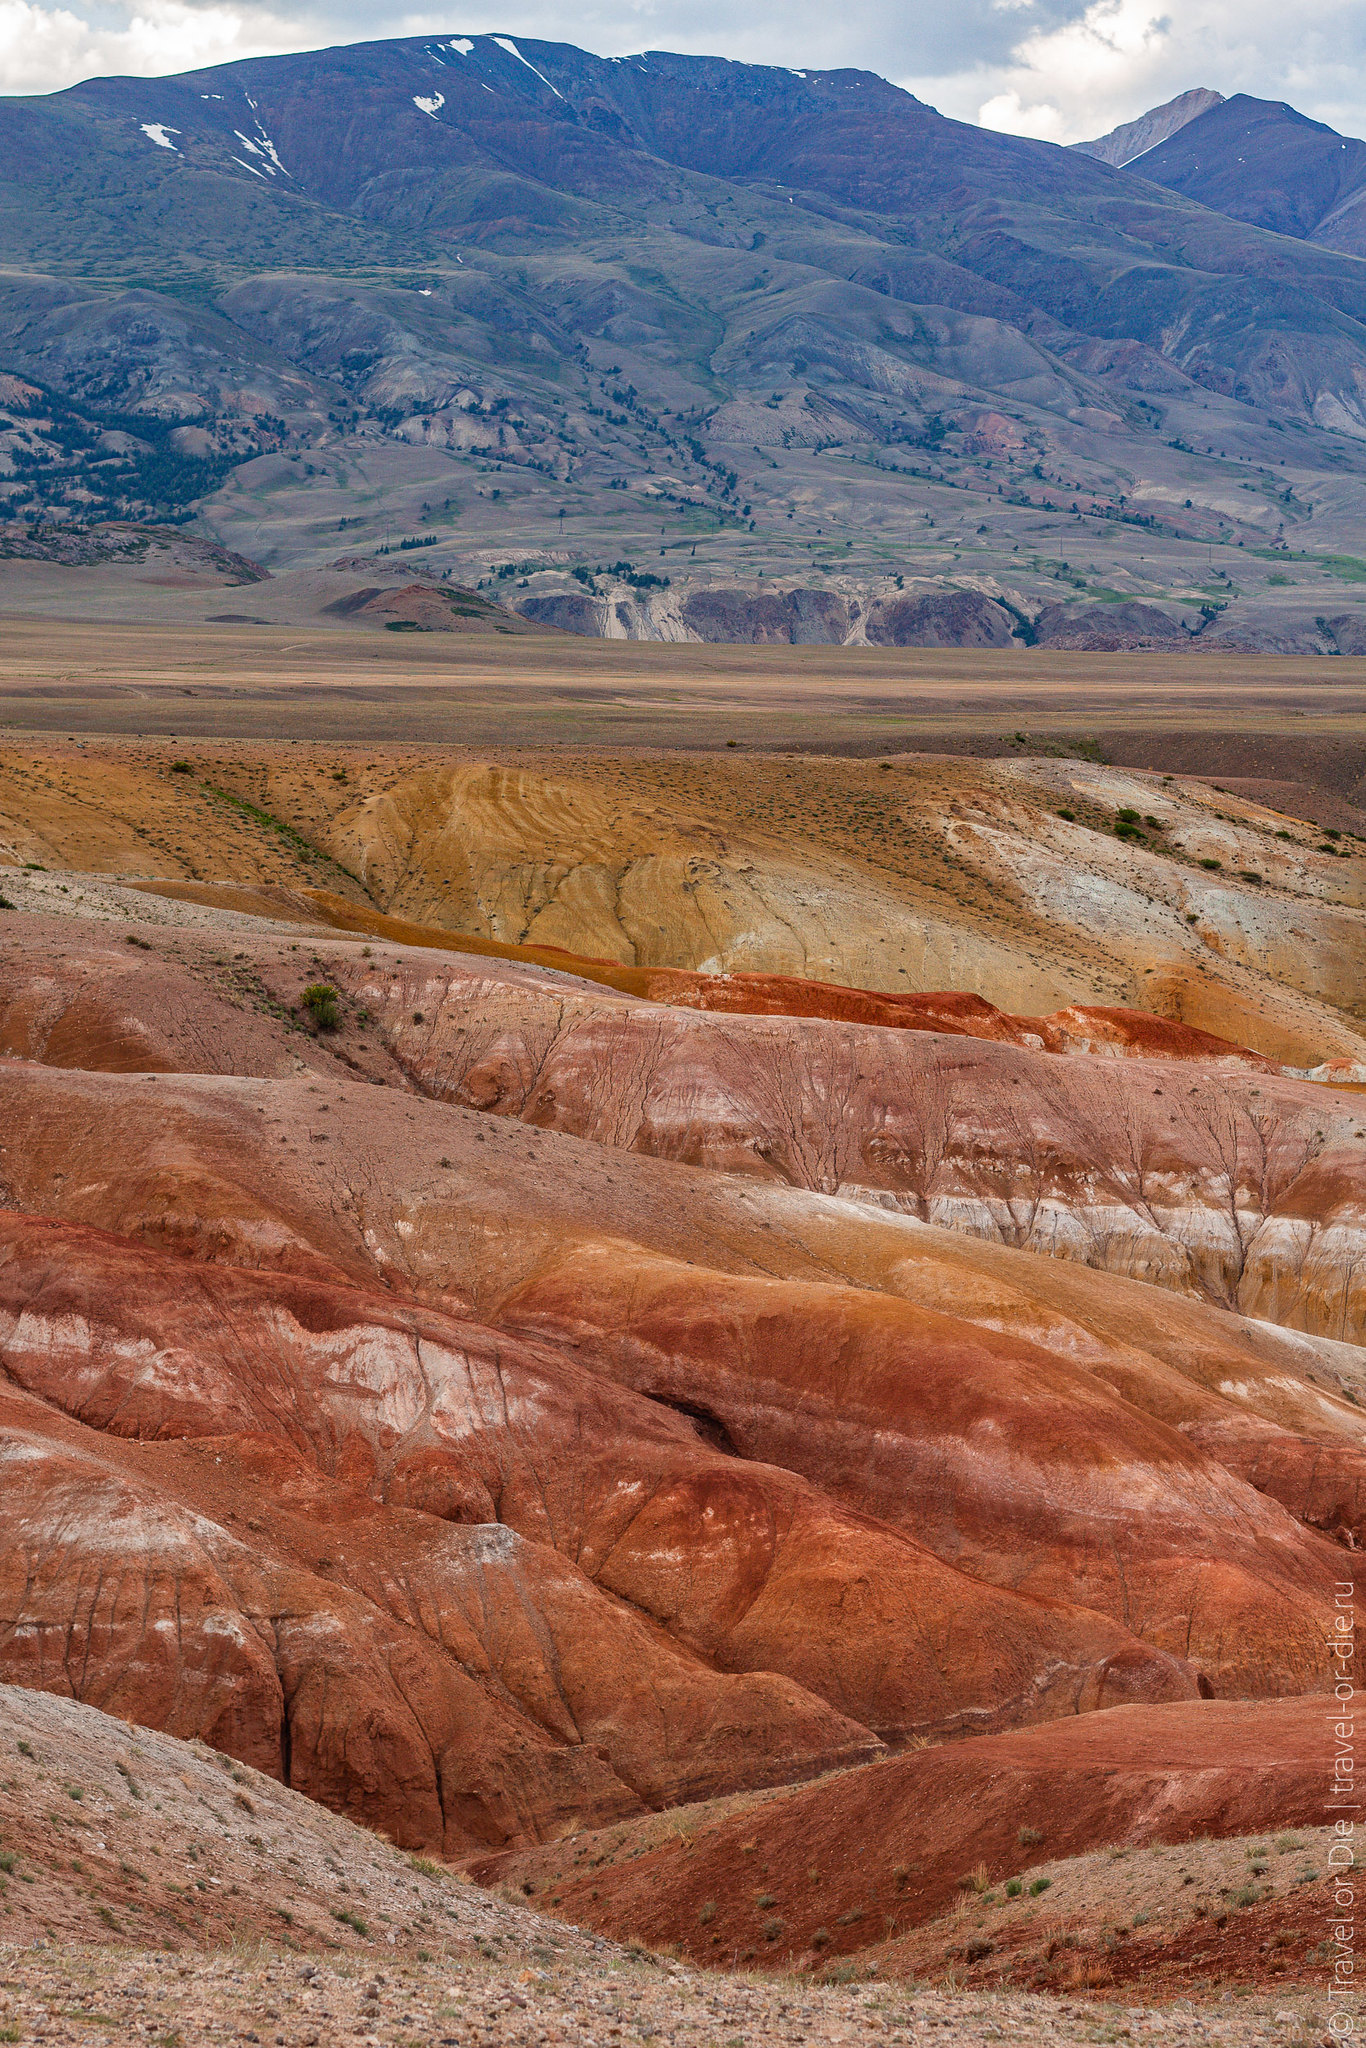 Mars-Kyzyl-Chin-Valley-Altay-9717